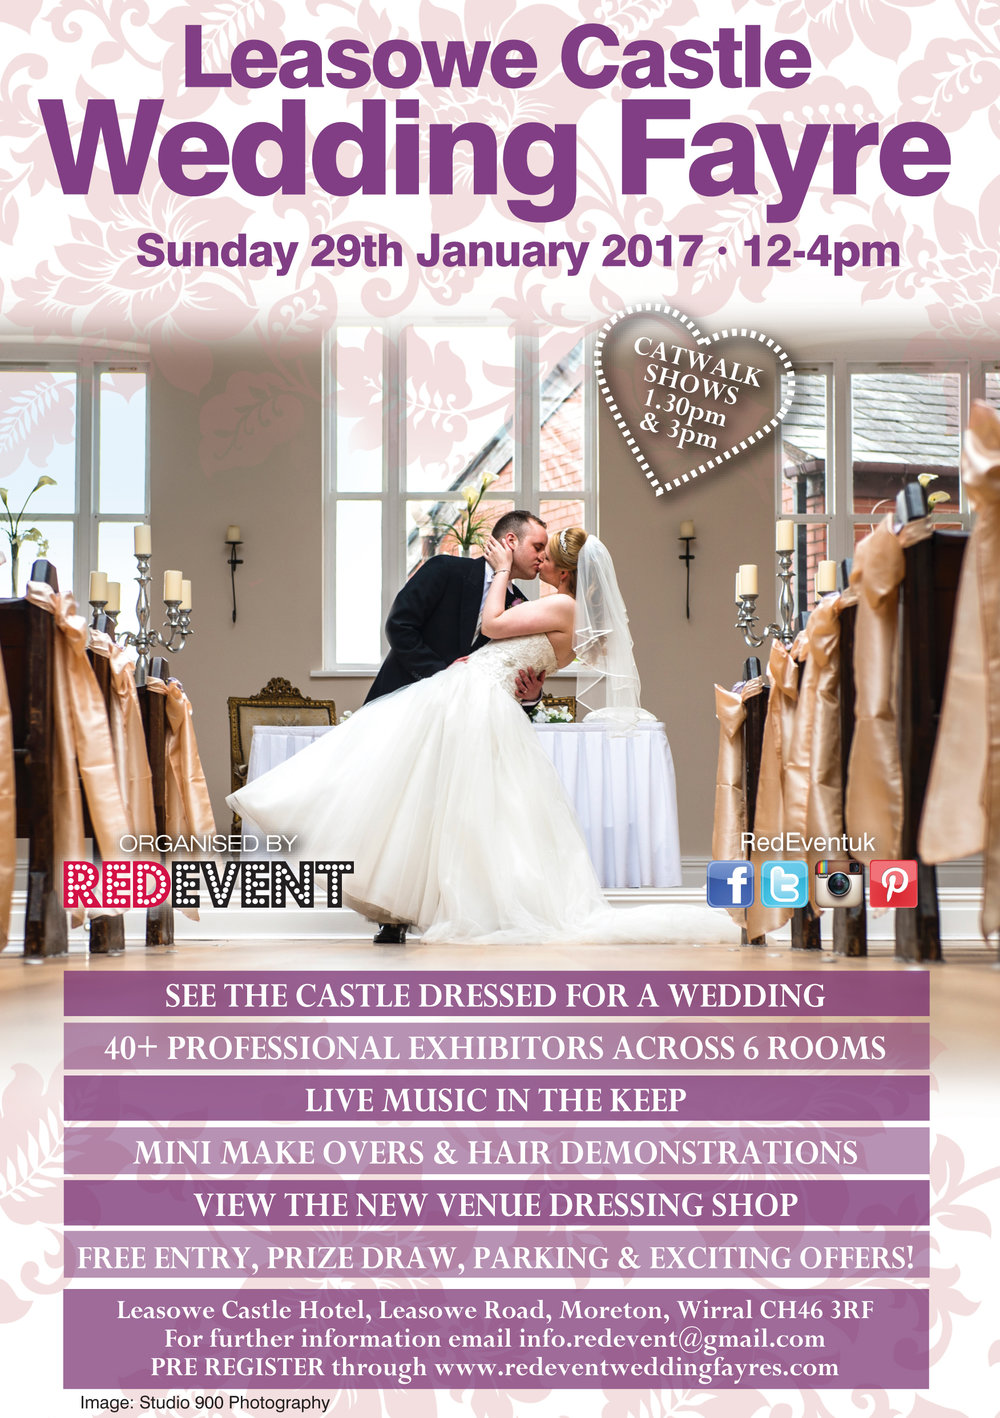 Leasowe Castle Wedding Fayre flyer